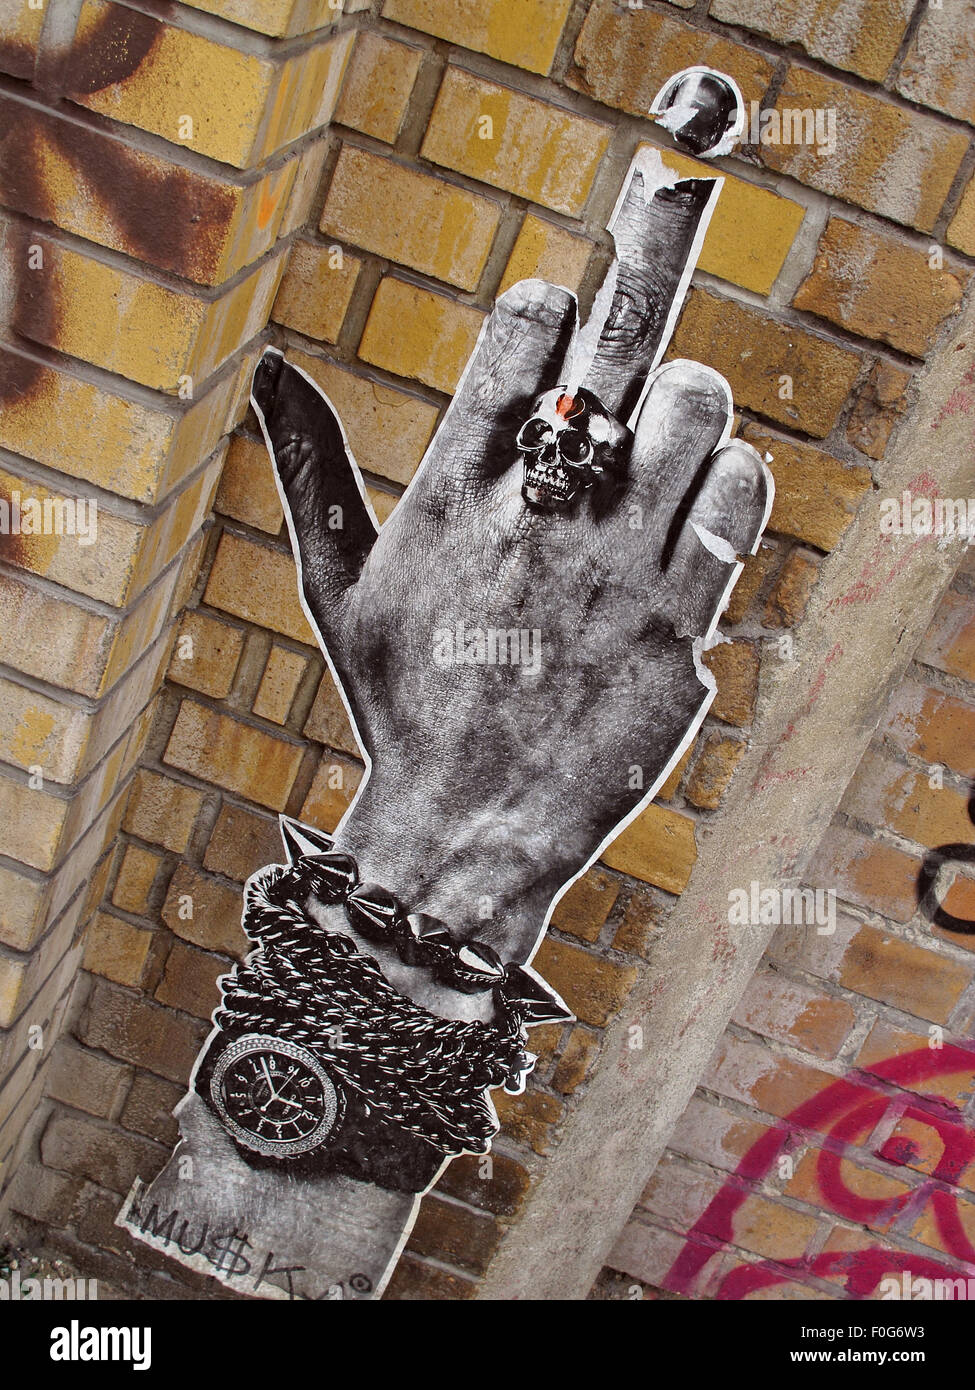 Mitte,DircksenStr,Berlin,Germany,streetArt,artist,of,the,streetsmixedmedia,mixed,media,poster,paper,wall,walls,city,cities,urban,hipster,controversial,paste,up,pasteup,watch,arm,extended,middle,finger,skull ring,skullring,Skull ring,GoTonySmith,Deutsche,Deutschland,Buy Pictures of,Buy Images Of